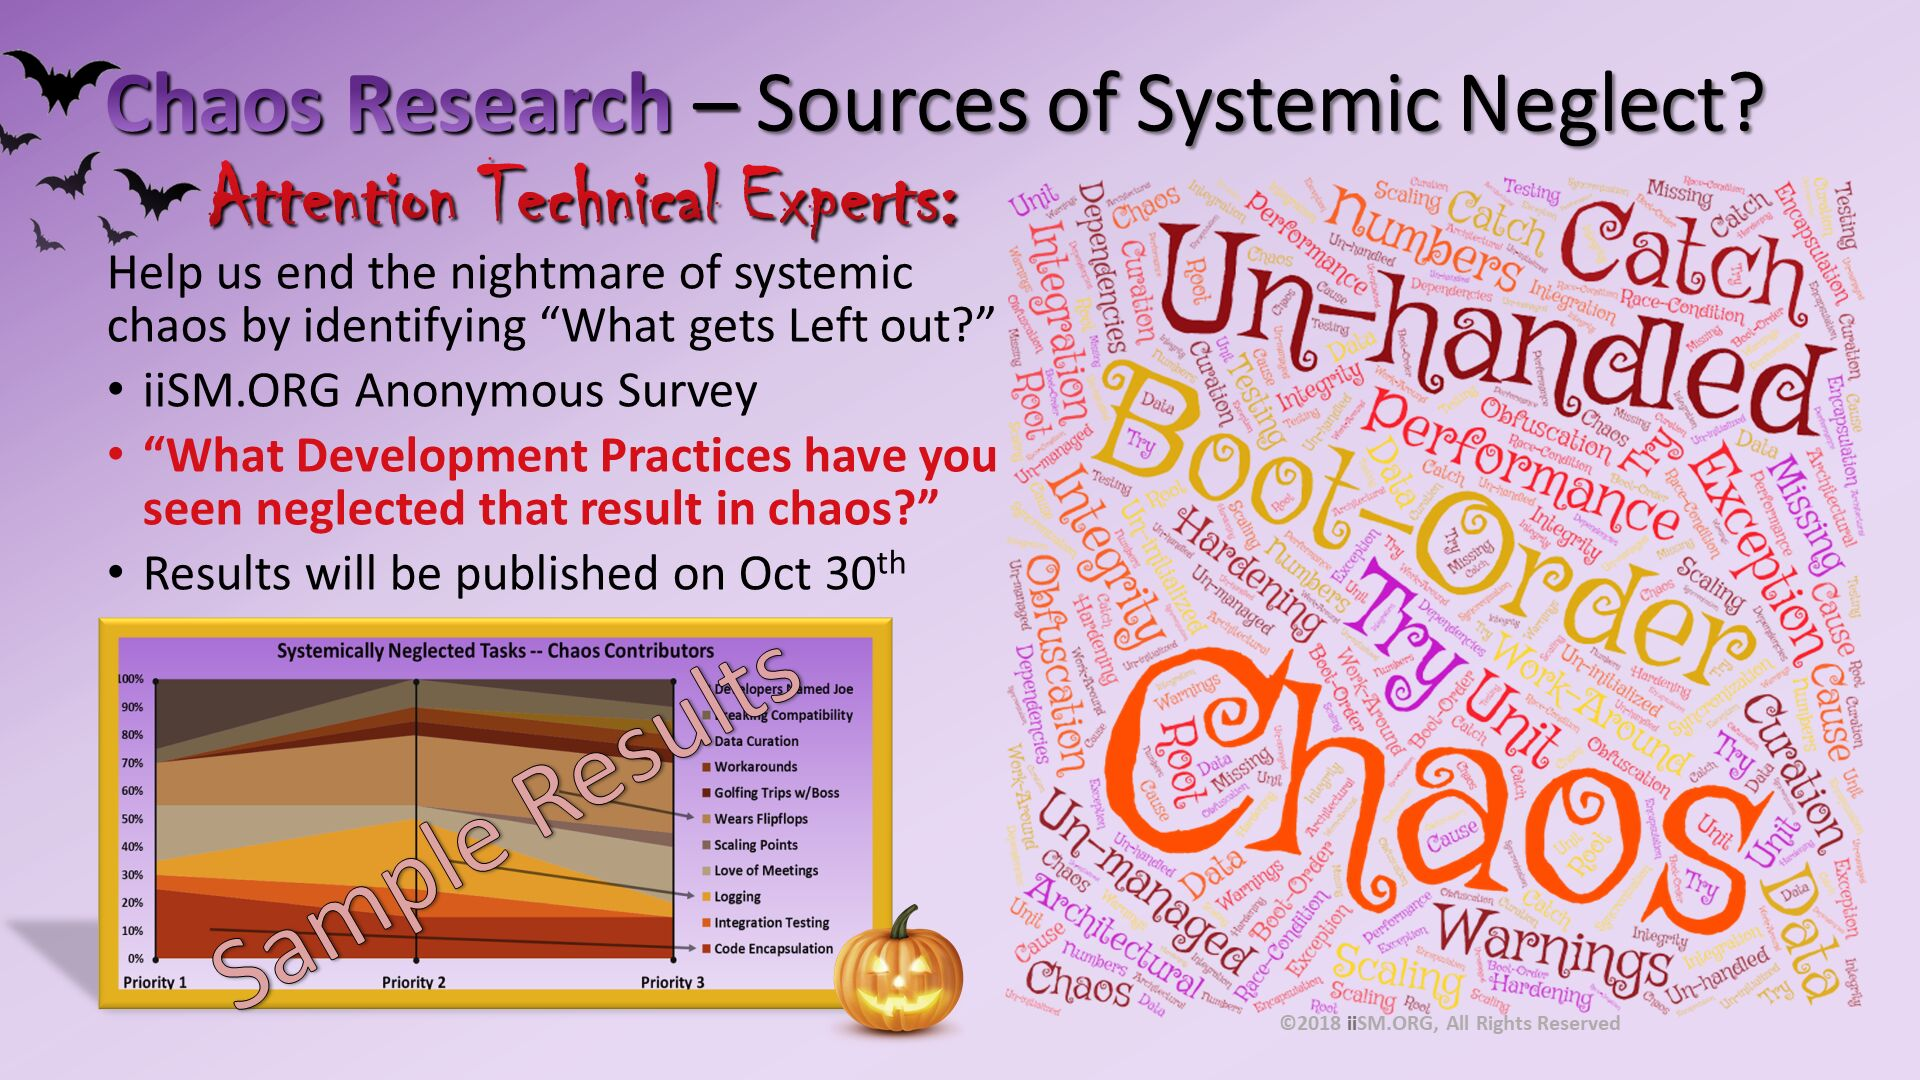 "Chaos Research – Sources of Systemic Neglect?.     Attention Technical Experts:  Help us end the nightmare of systemic chaos by identifying ""What gets Left out?"" iiSM.ORG Anonymous Survey ""What Development Practices have you seen neglected that result in chaos?"" Results will be published on Oct 30th . ©2018 iiSM.ORG, All Rights Reserved. Sample Results."